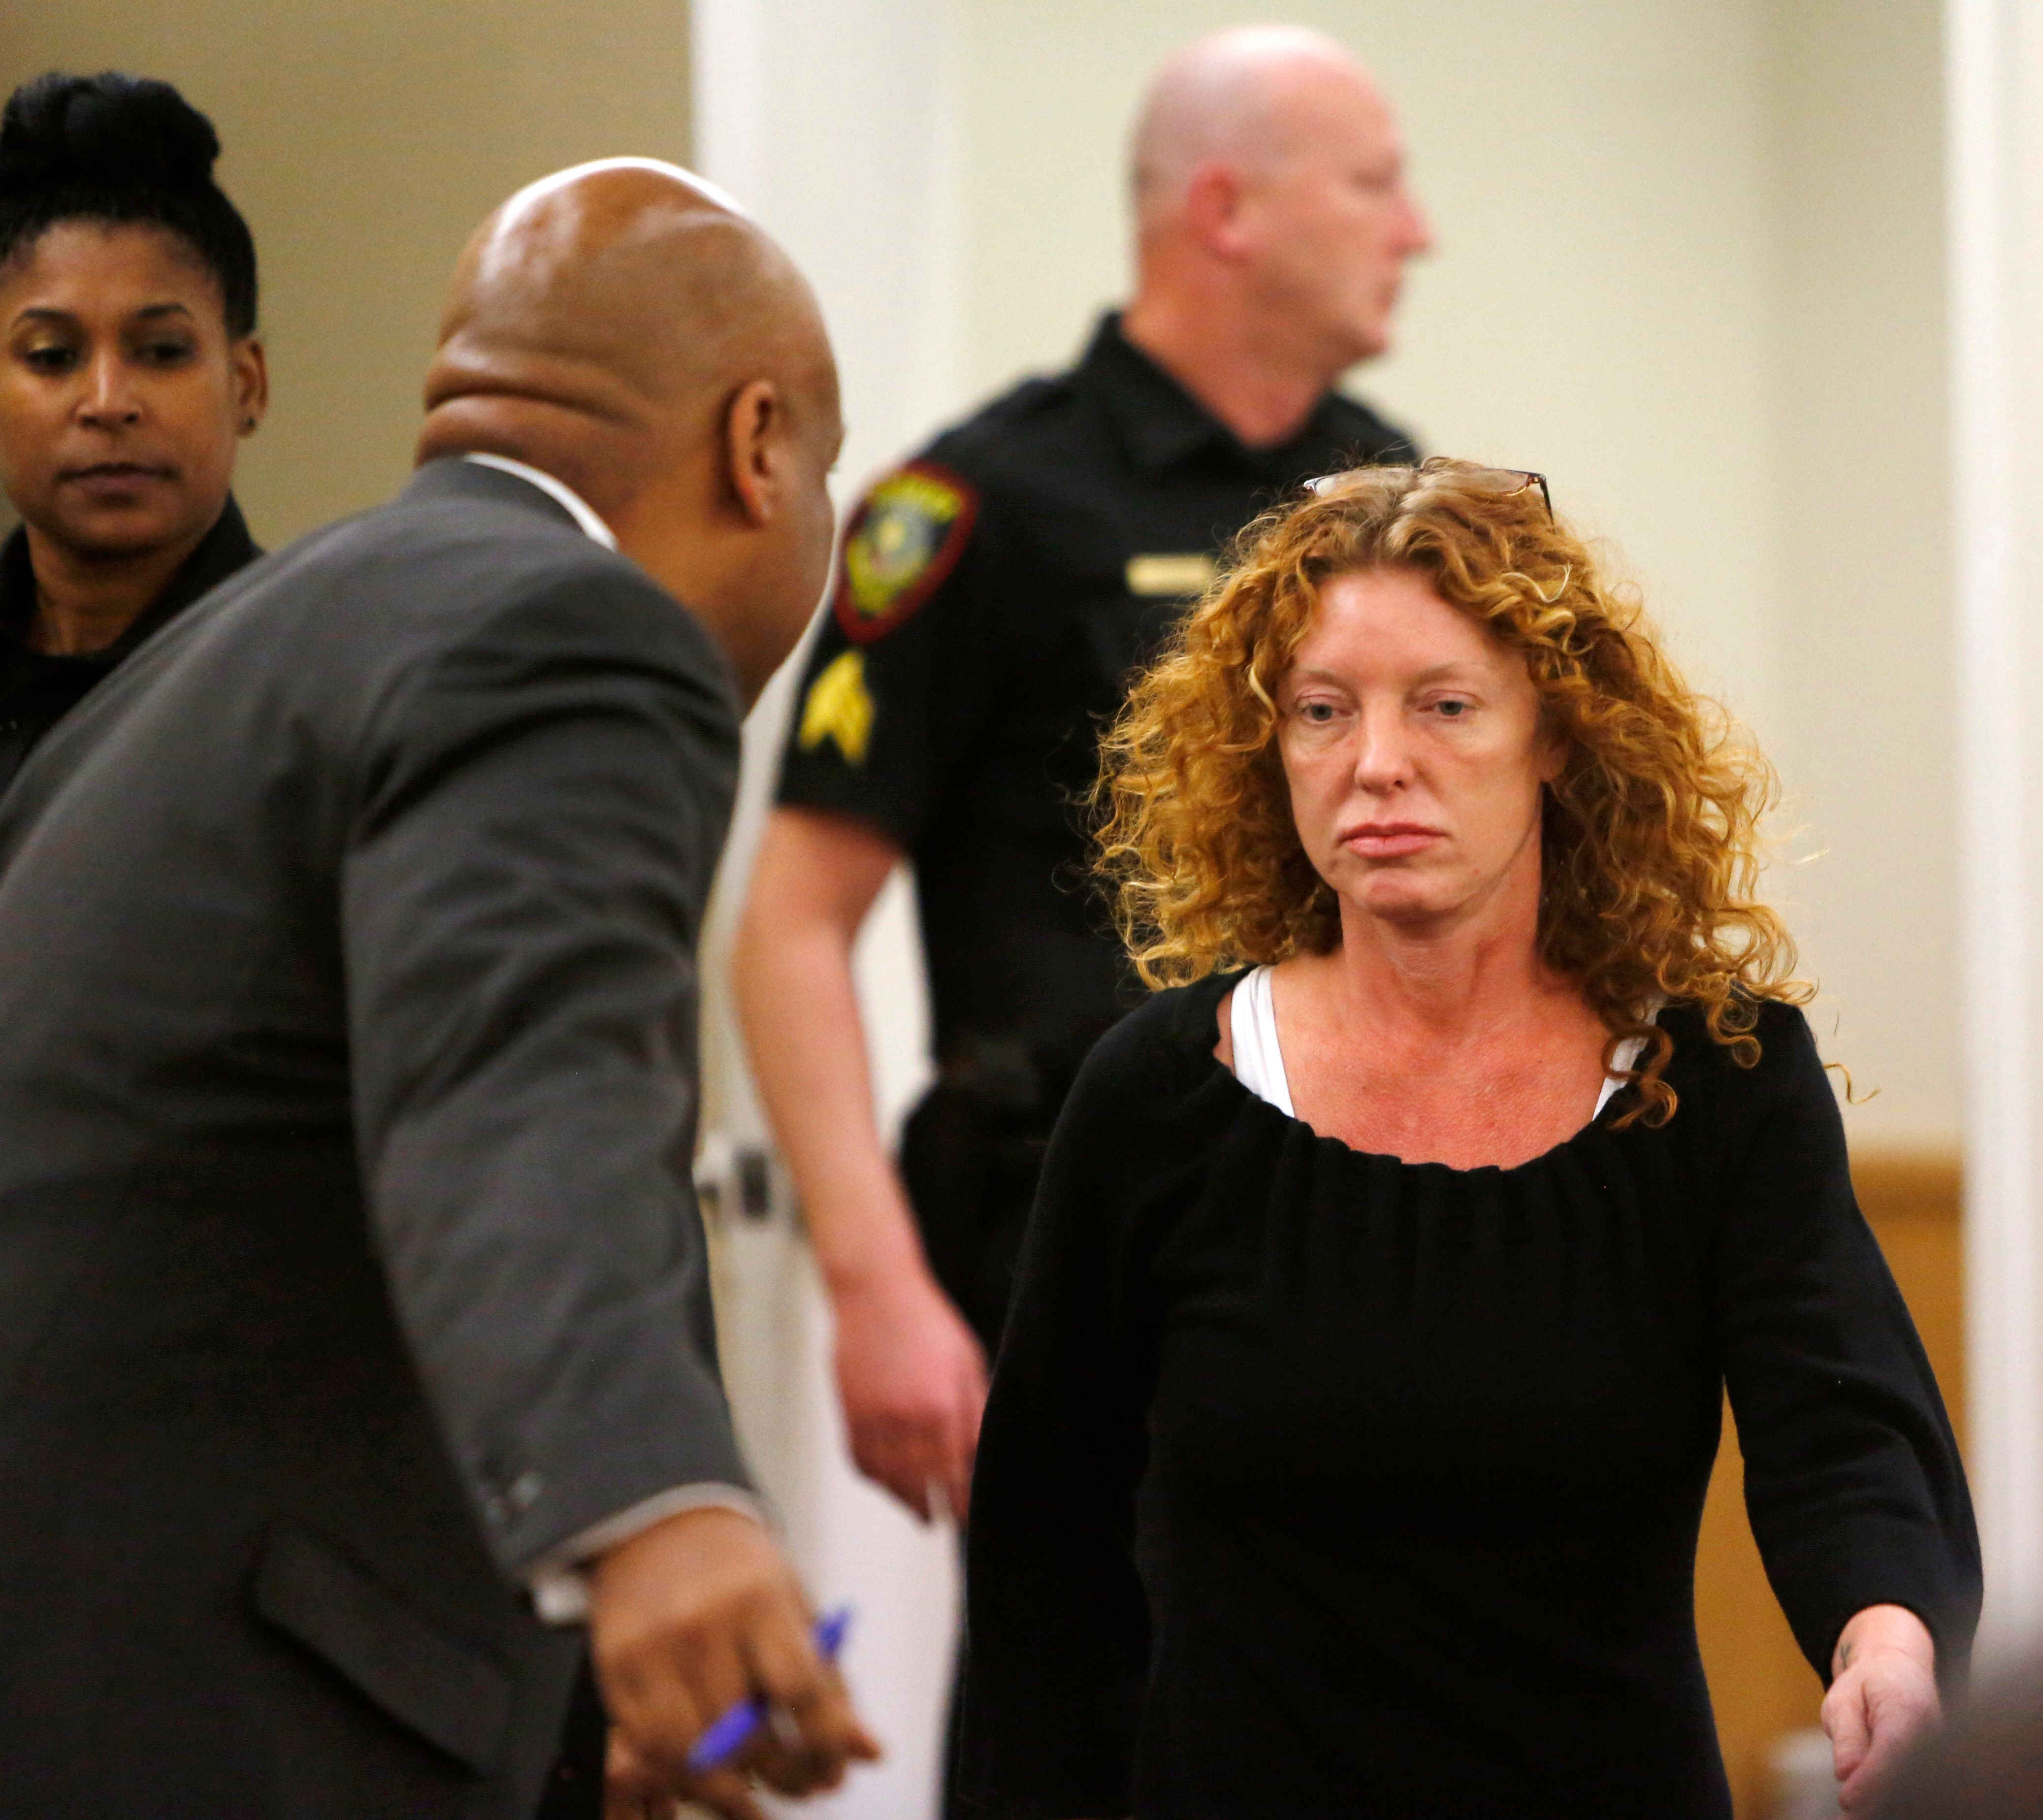 Tonya Couch (R) is escorted to her defense team in  Criminal District Court in Fort Worth, Texas, January 11, 2016.  A Texas judge on Monday slashed the bond required for a mother charged with helping her teenage son flee to Mexico after was suspected of violating a probation deal that kept him out of prison following a fatal drunk driving crash.  REUTERS/David Kent/Ft. Worth Star-Telegram/Pool